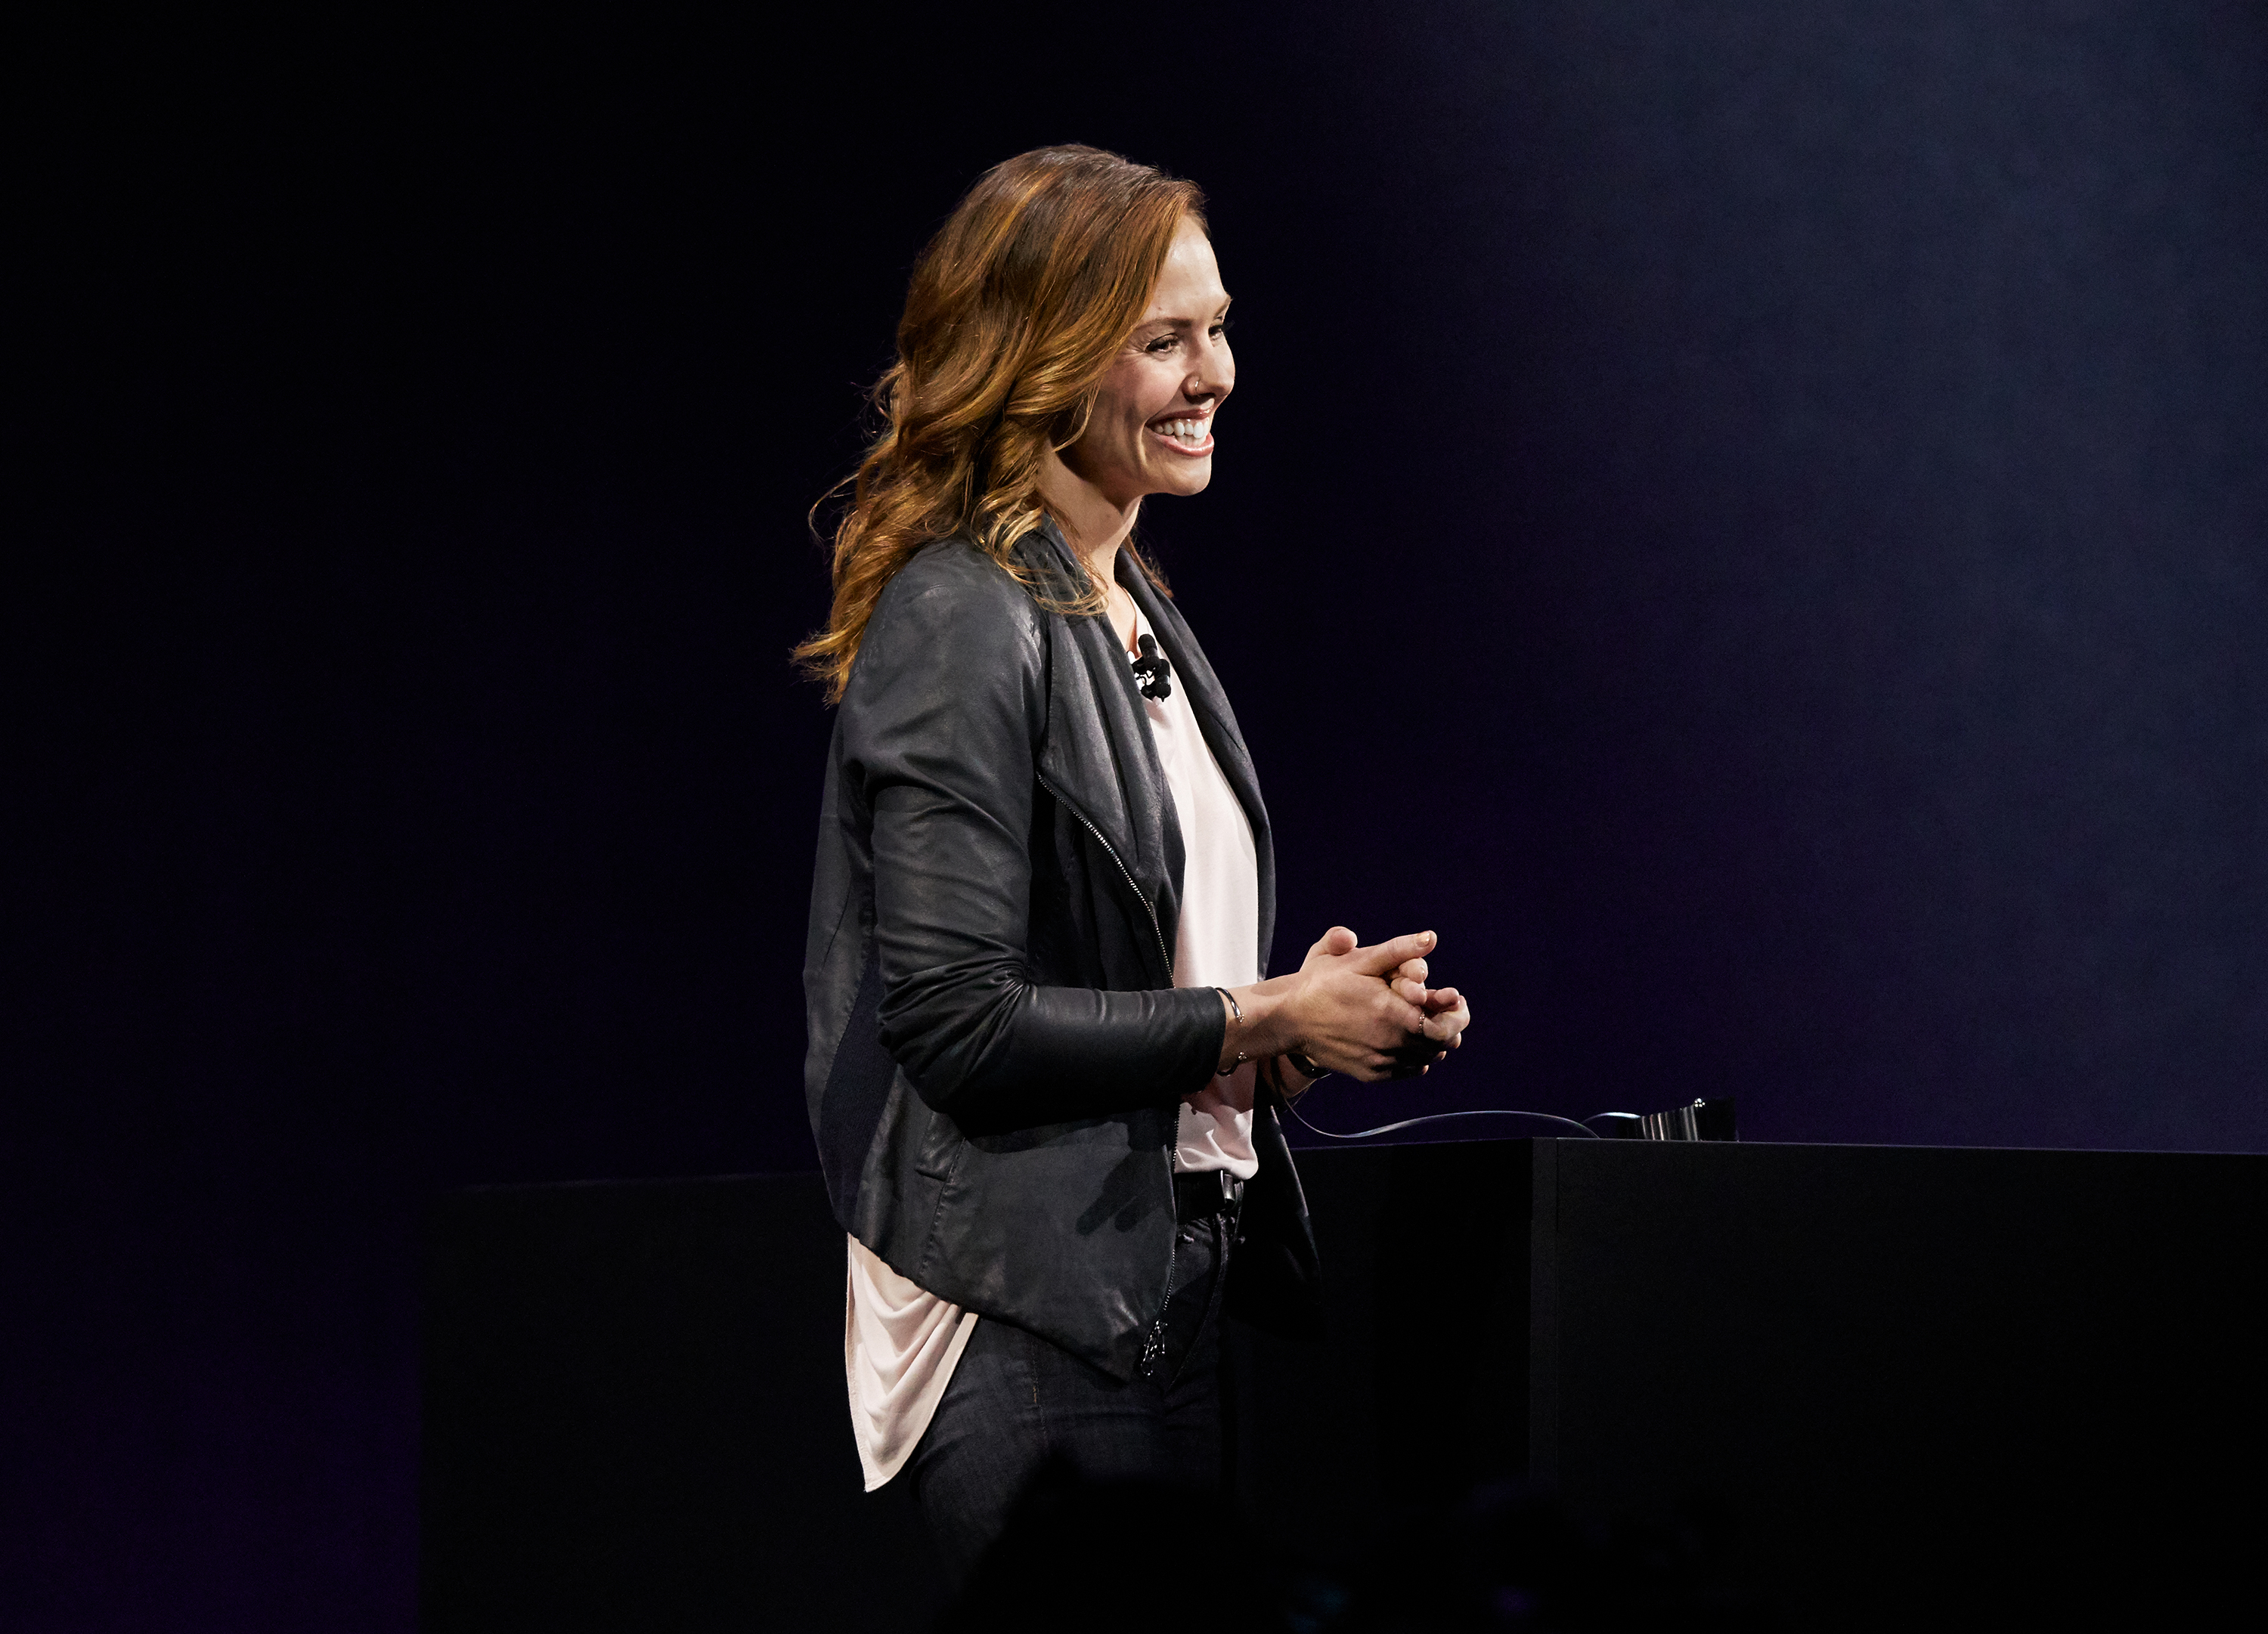 wwdc_sj_keynote_vera_carr_apple_watch